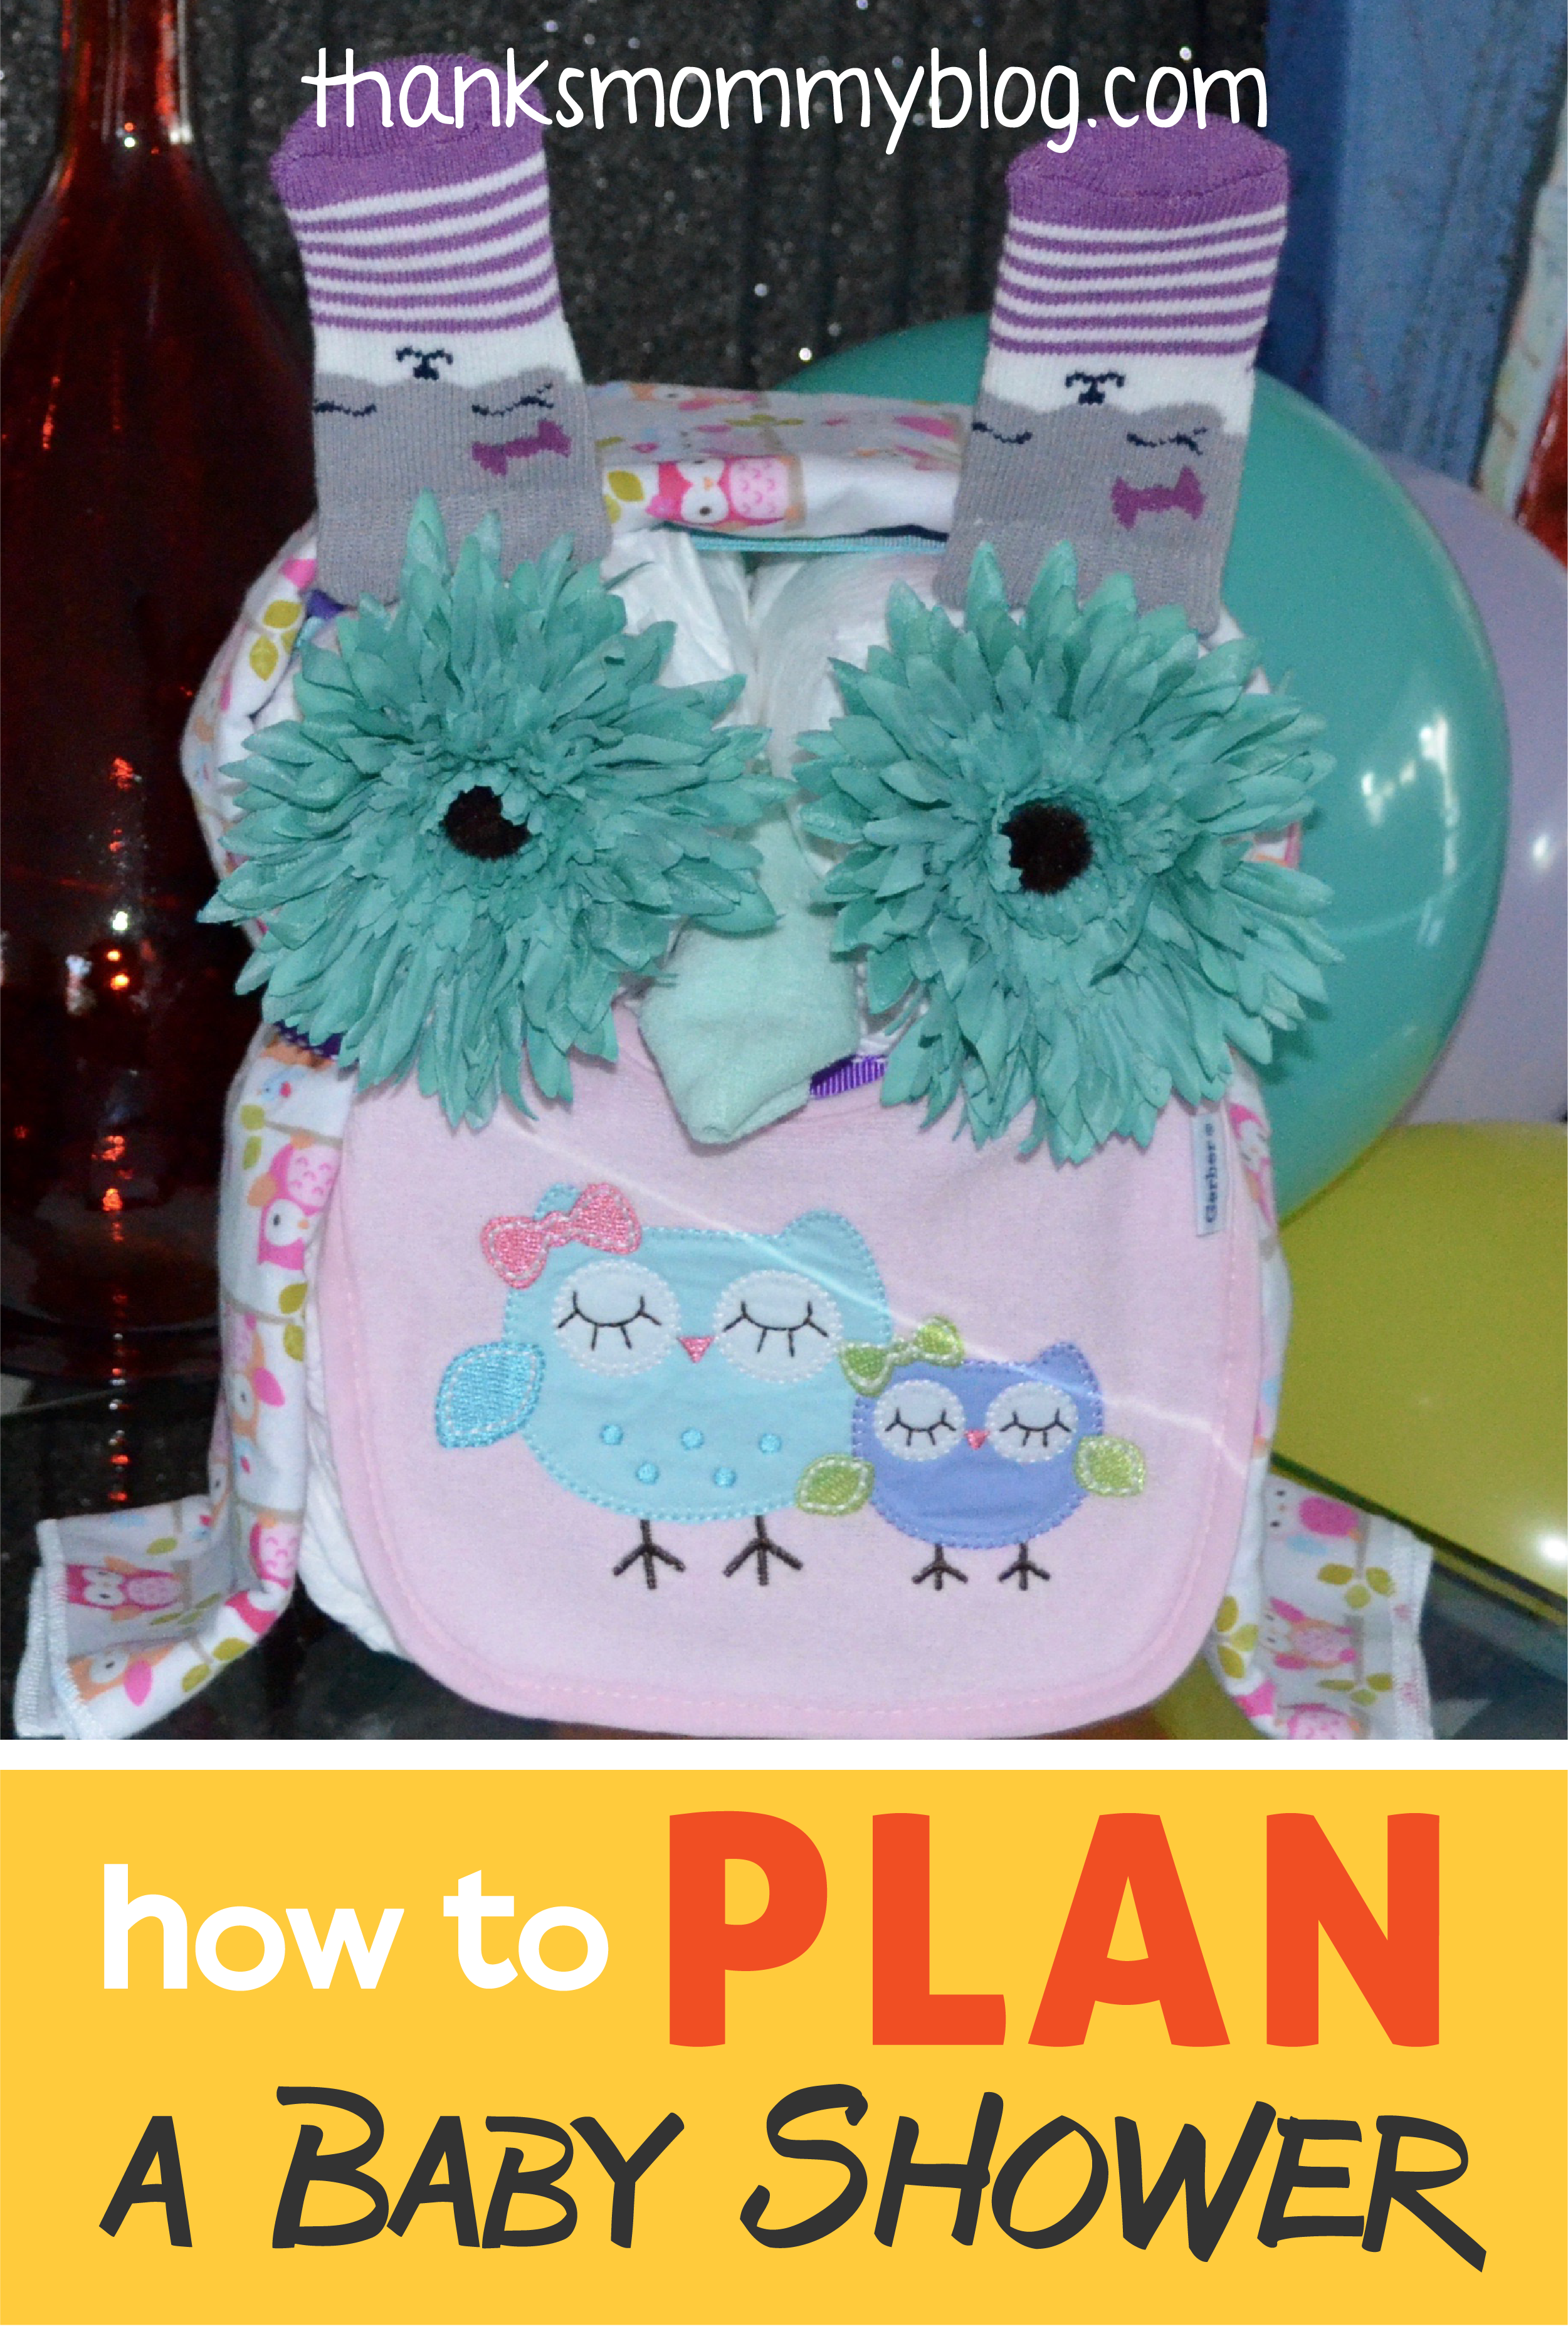 How to Plan a Baby Shower + free printable